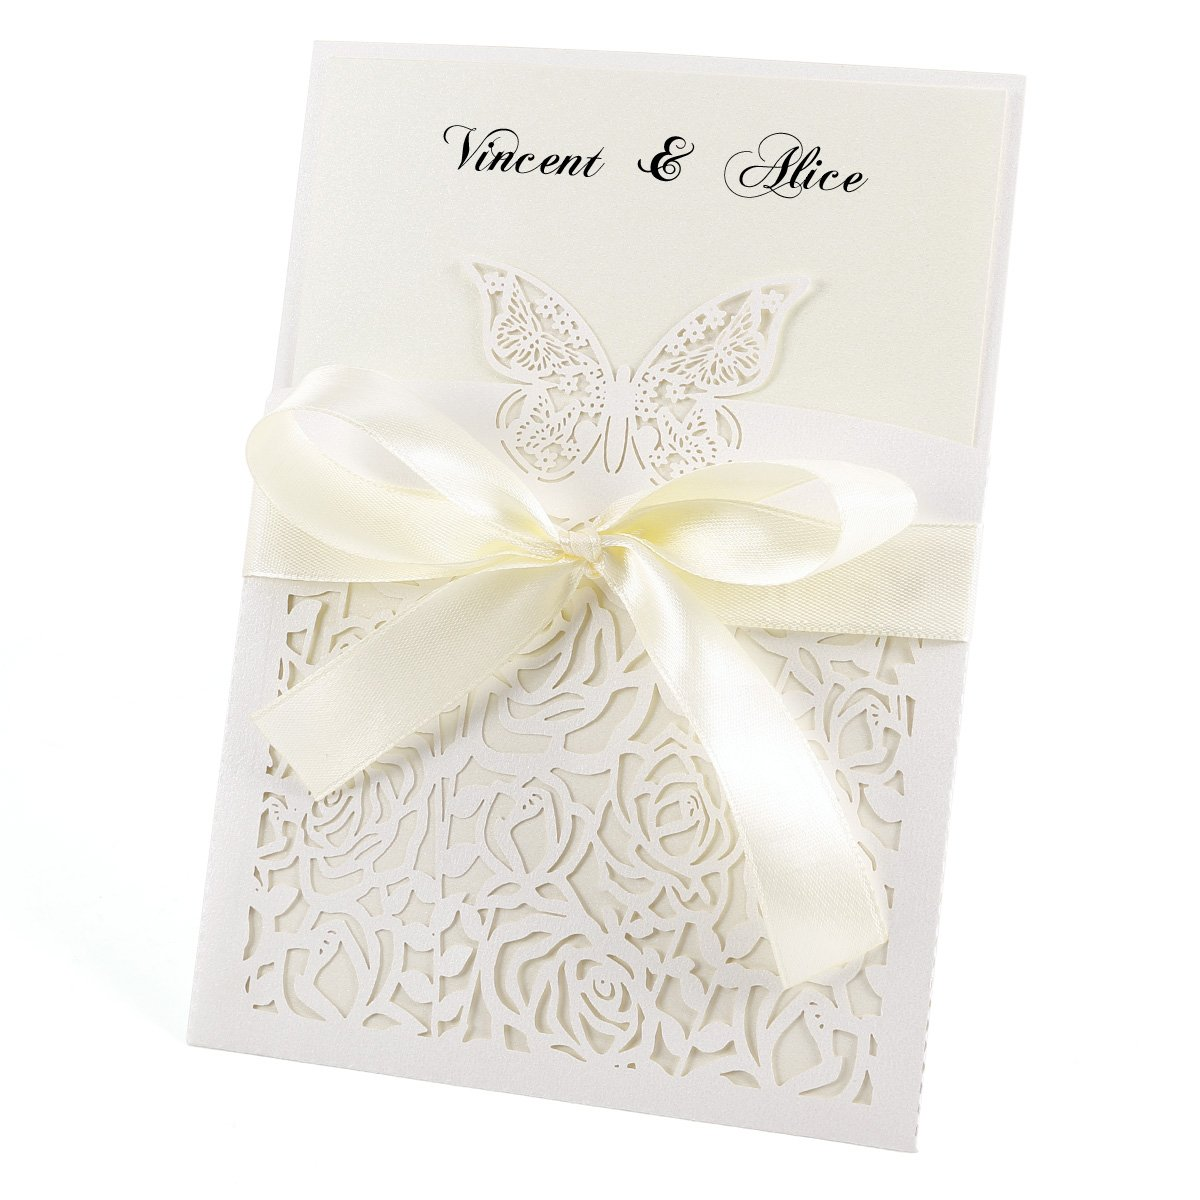 10 Day Time /Evening Wedding Invitations Sheets with Envelopes Anladia